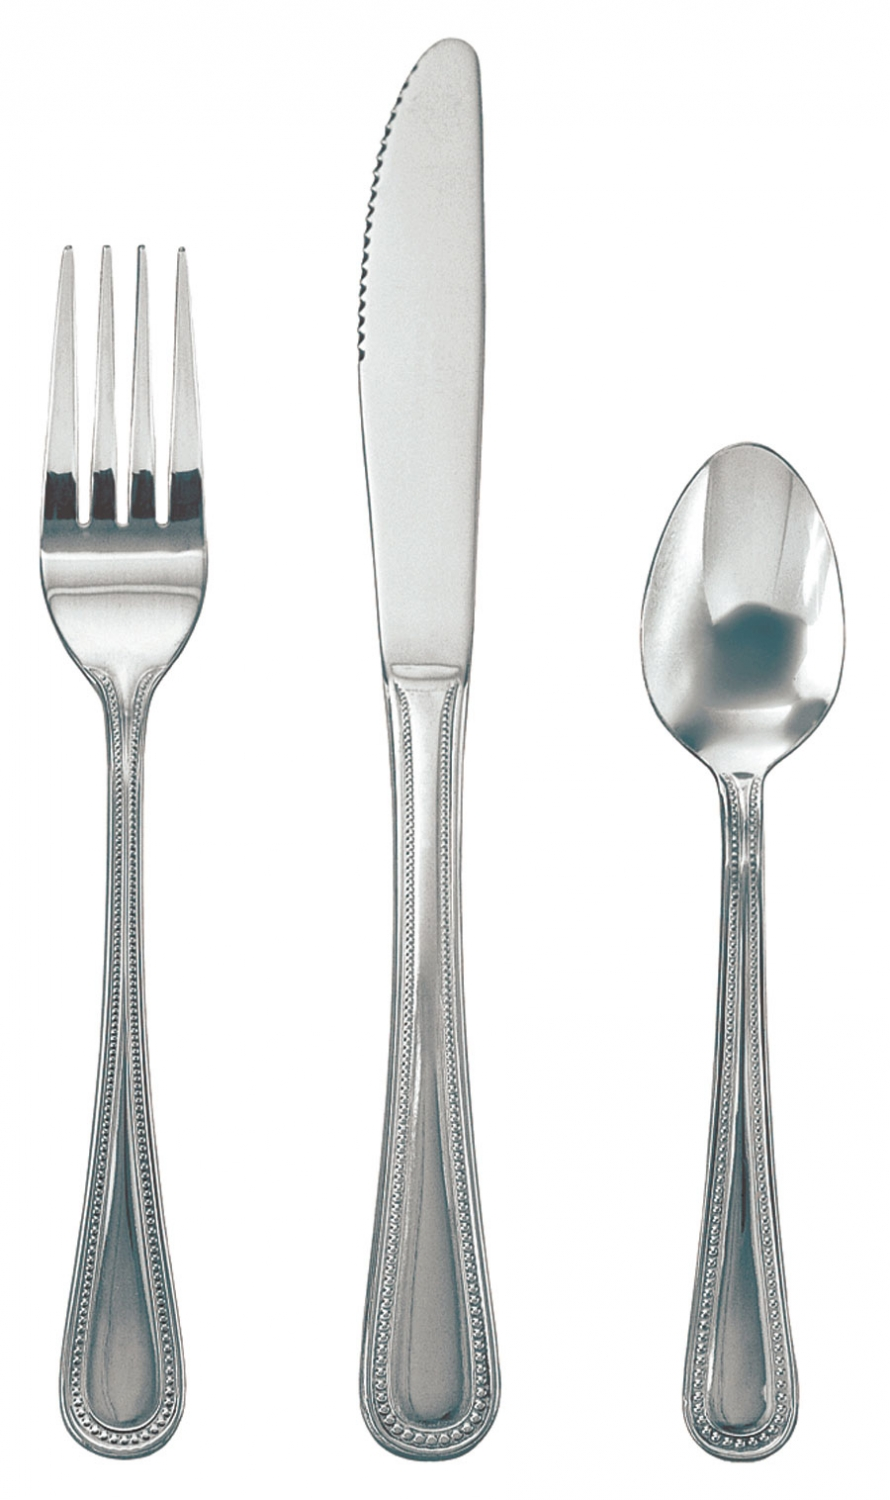 Update International PL-86 Pearl Salad Fork - 1 doz